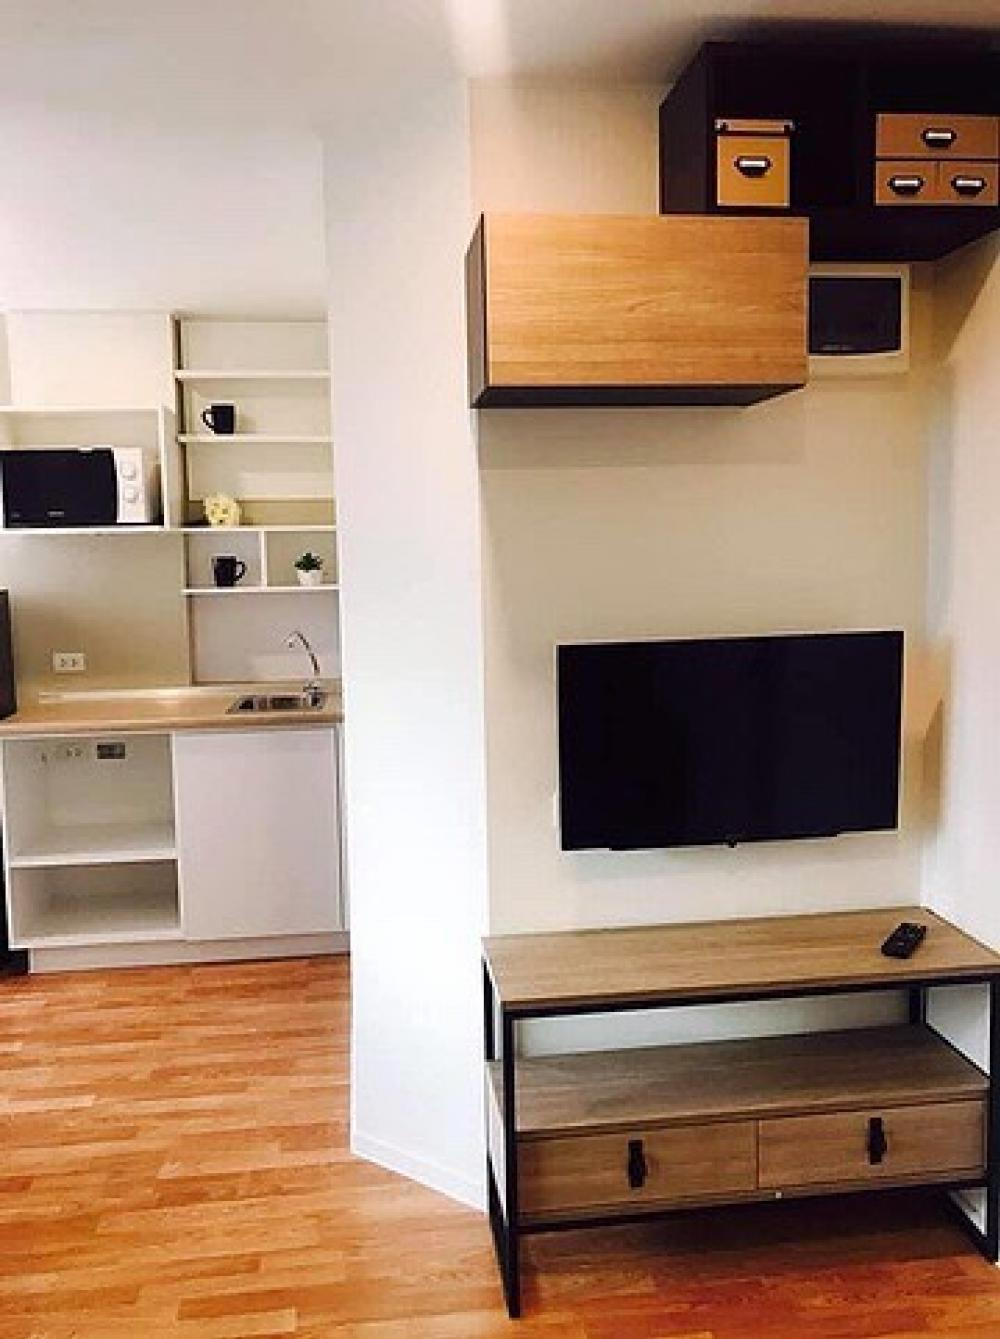 For SaleCondoSamrong, Samut Prakan : Rent / Sale Lumpini Sukhumvit 76 Bearing Station 1 Building A, high floor, sell with electrical appliances + furniture add line: @ ynv192x (answer quickly)